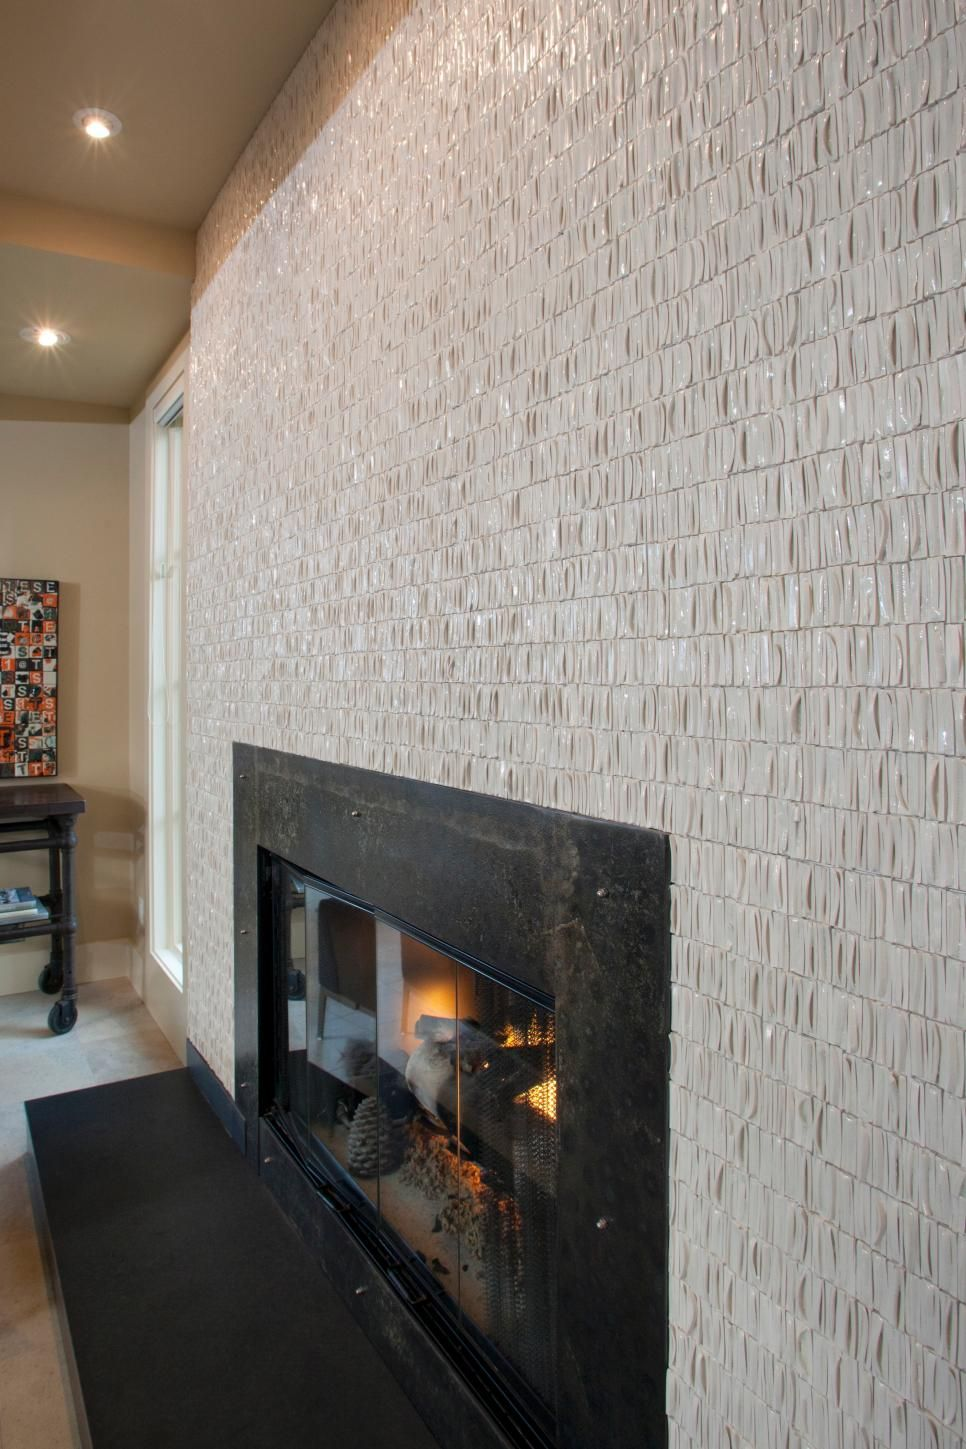 Textured Beige Tiles Surround This Black Fireplace Creating Contrast And Visual Interest Kostyor